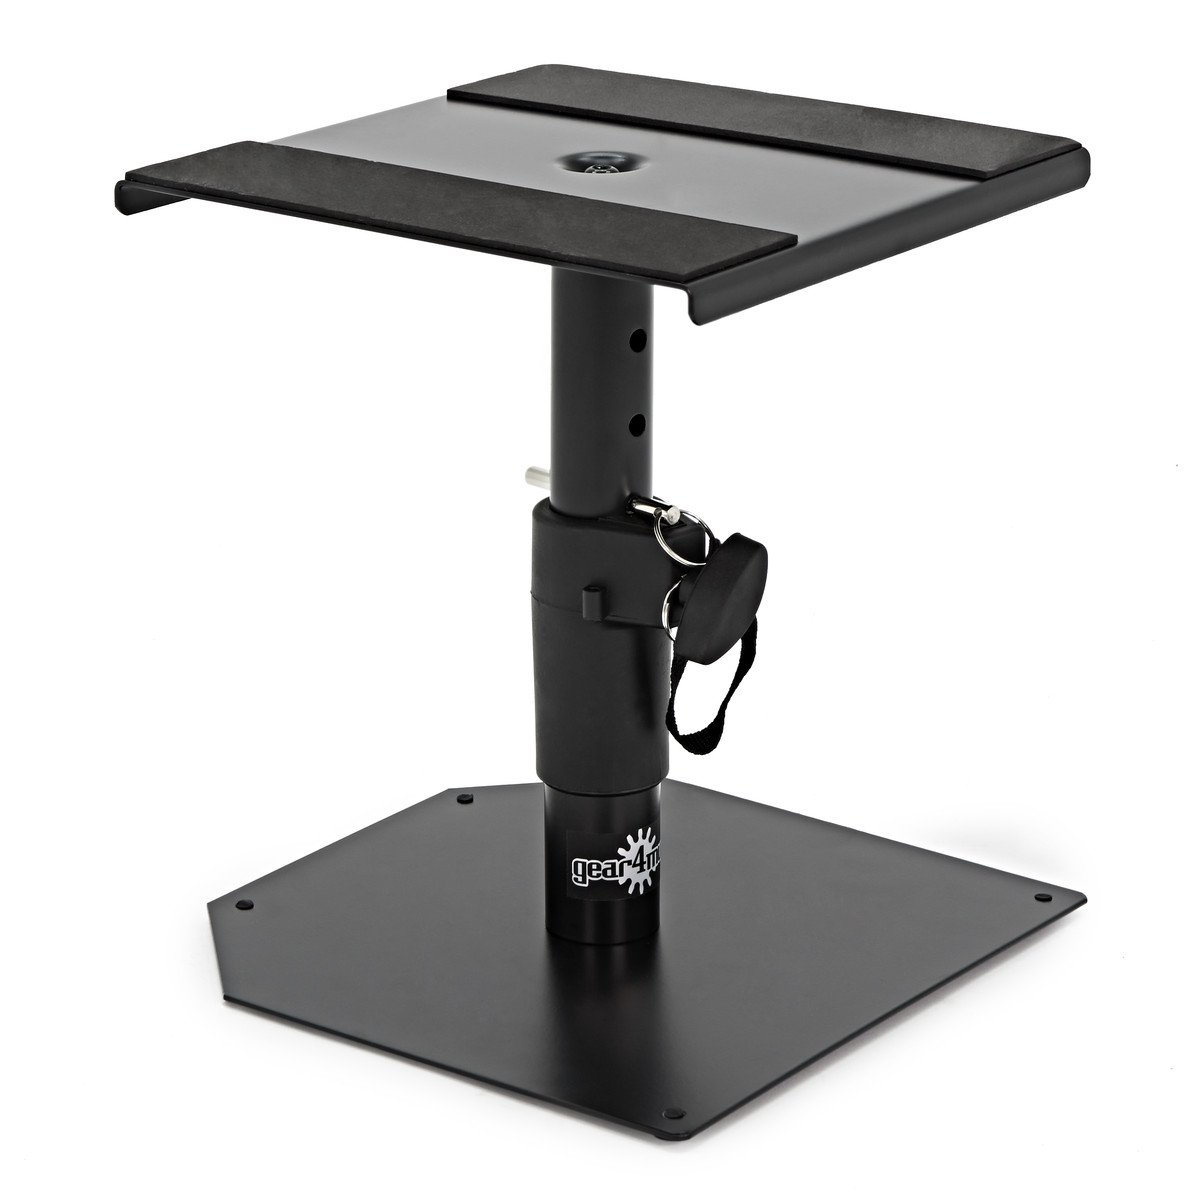 desktop monitor speaker stands by gear4music pair amazon co uk rh amazon co uk